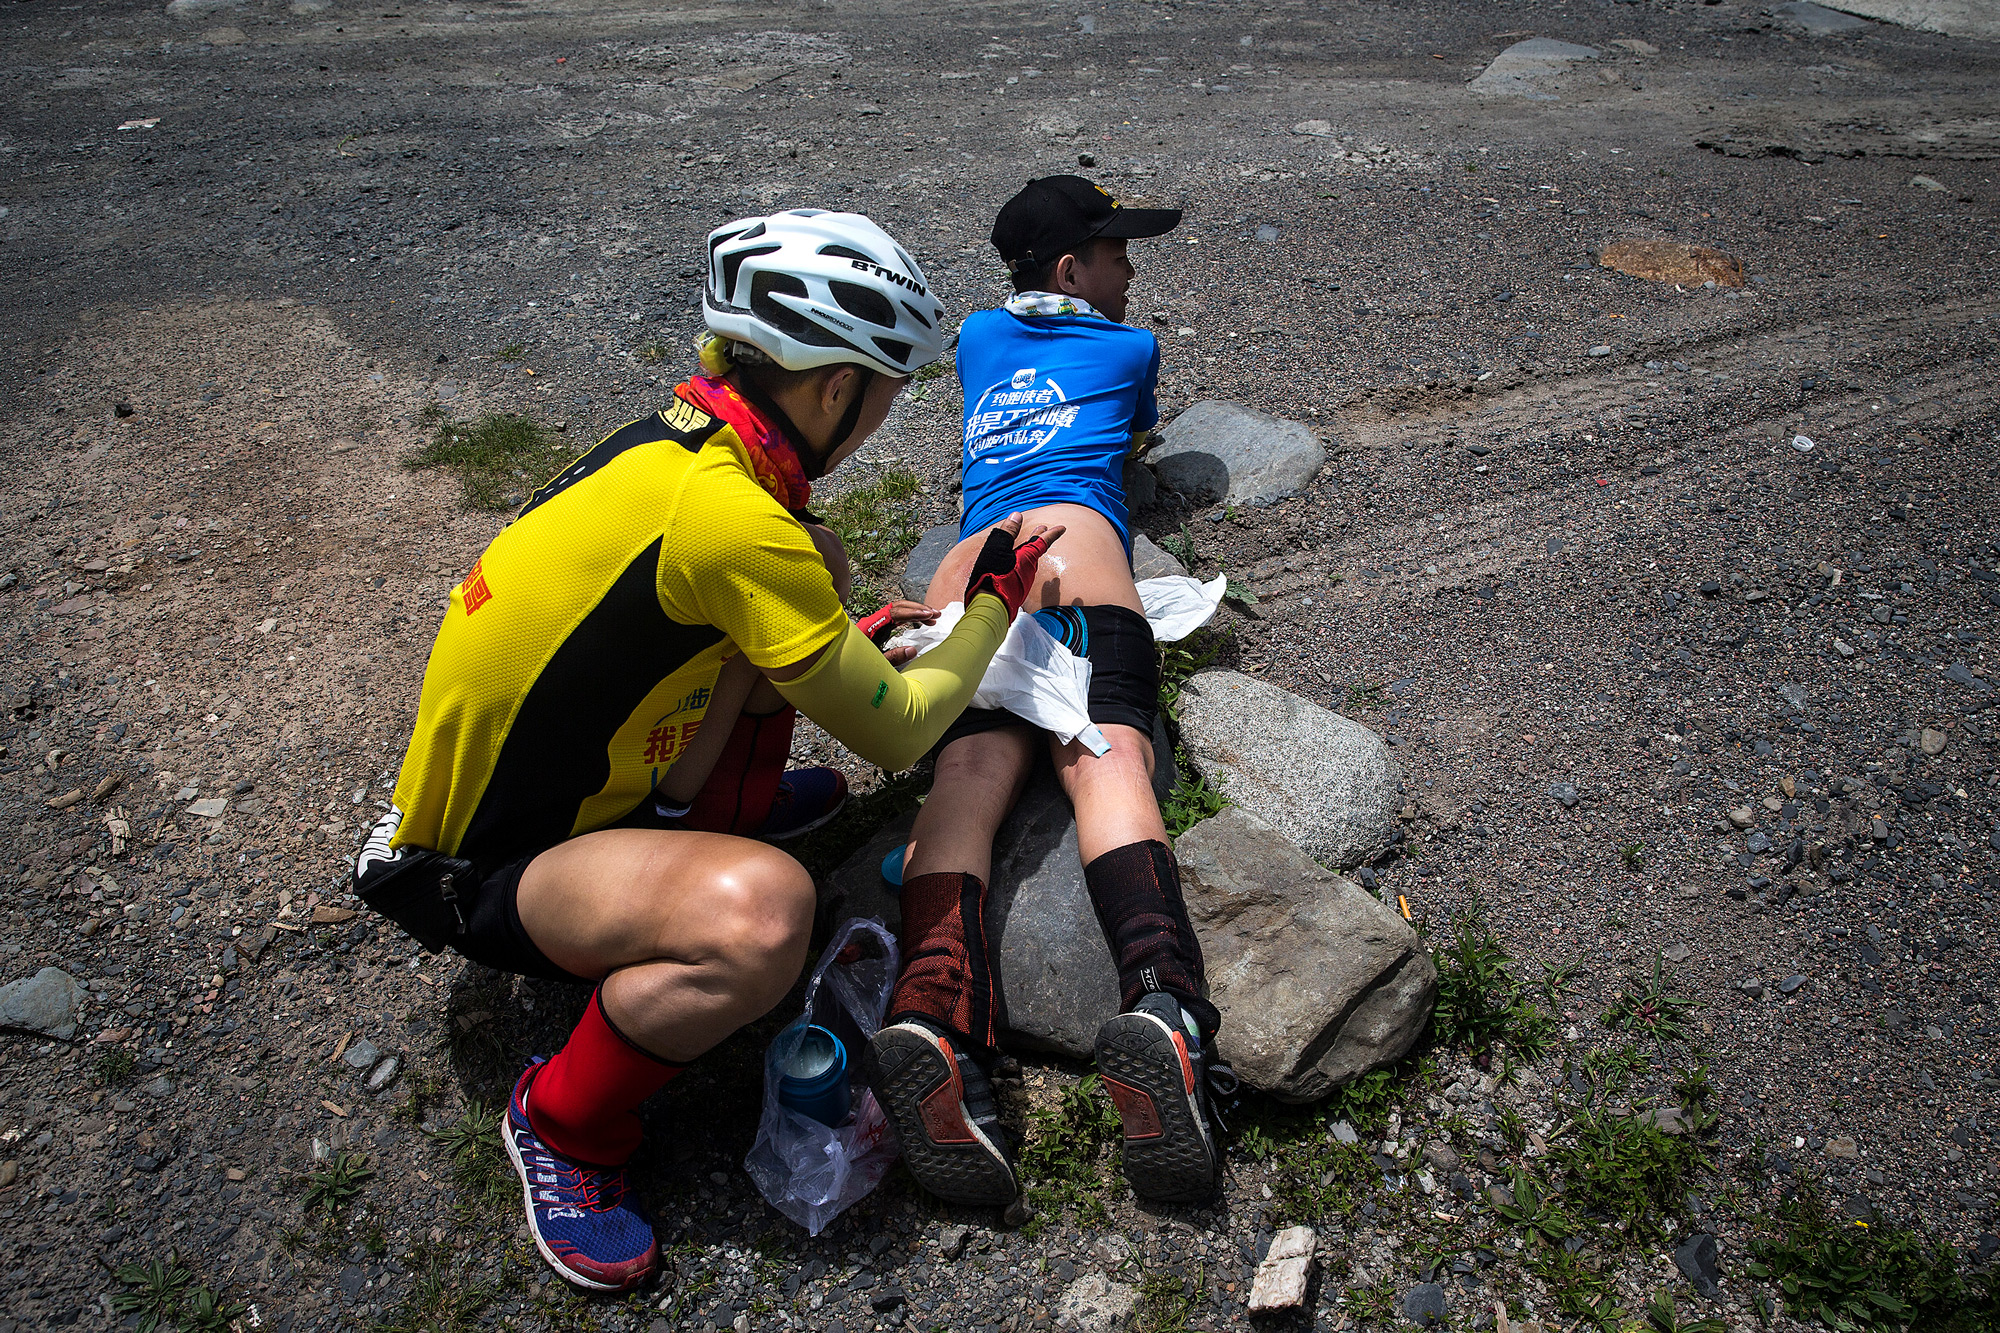 The father and son have pledged to bike the entire route, without riding in any automobiles. So, bearing the pain, Runxi keeps going with his father. Chao applies Vaseline to Runxi's irritated skin before they depart for the sixth day's ride, which lasts for nine hours and 50 miles, July 20.